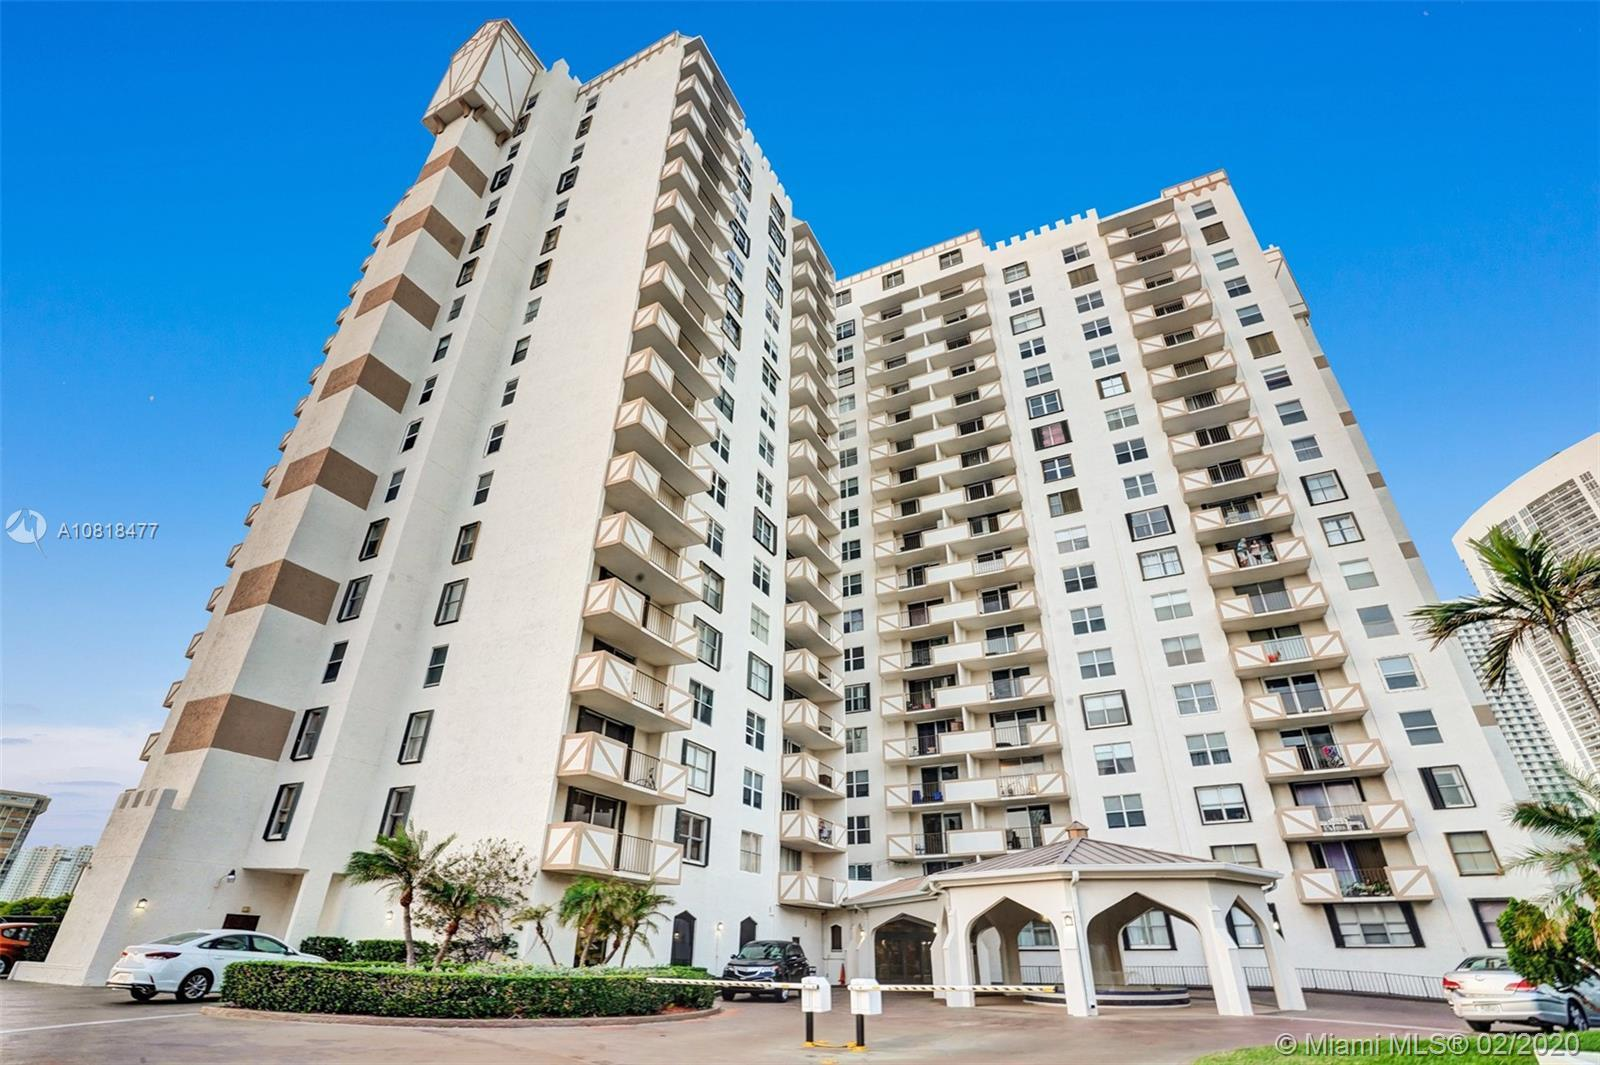 Come see this hidden gem; one of the largest 1 bedroom units in all of nearby Ocean Dr. Boasting 130